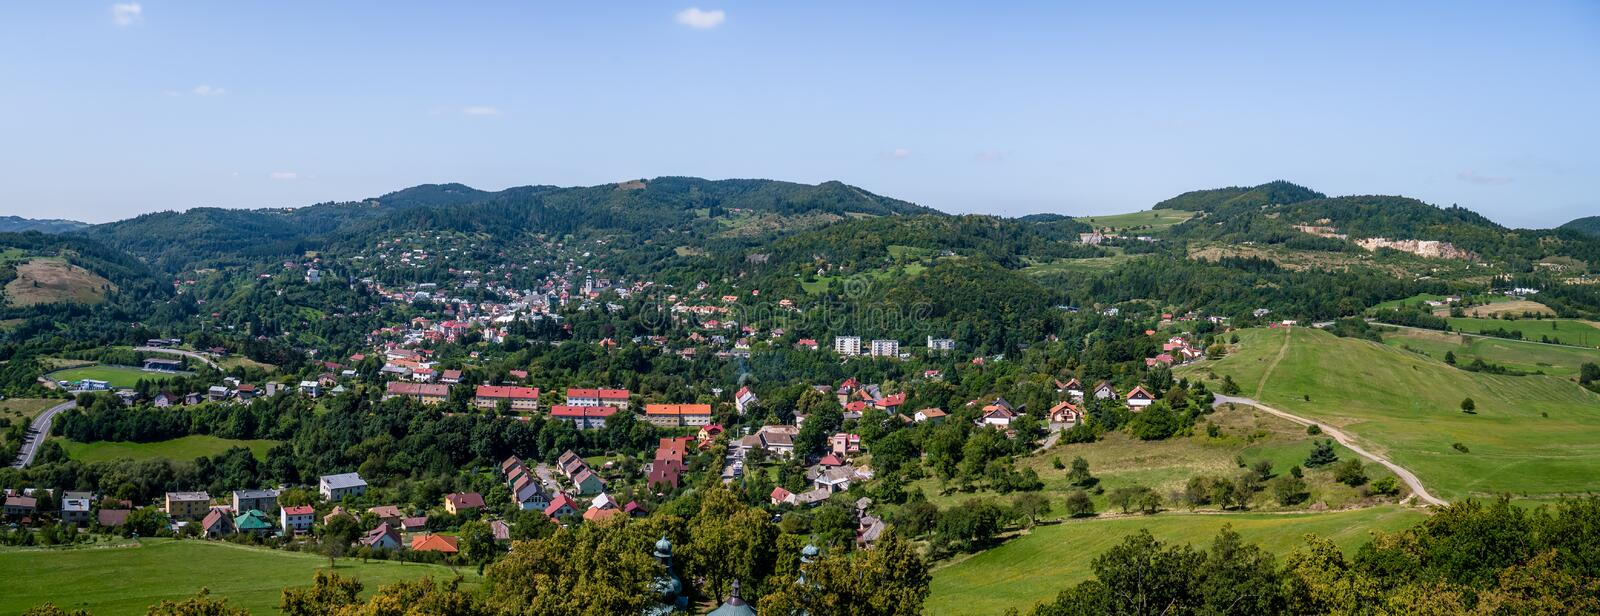 Panorama photo of Banska Stiavnica, Slovakia stock photos